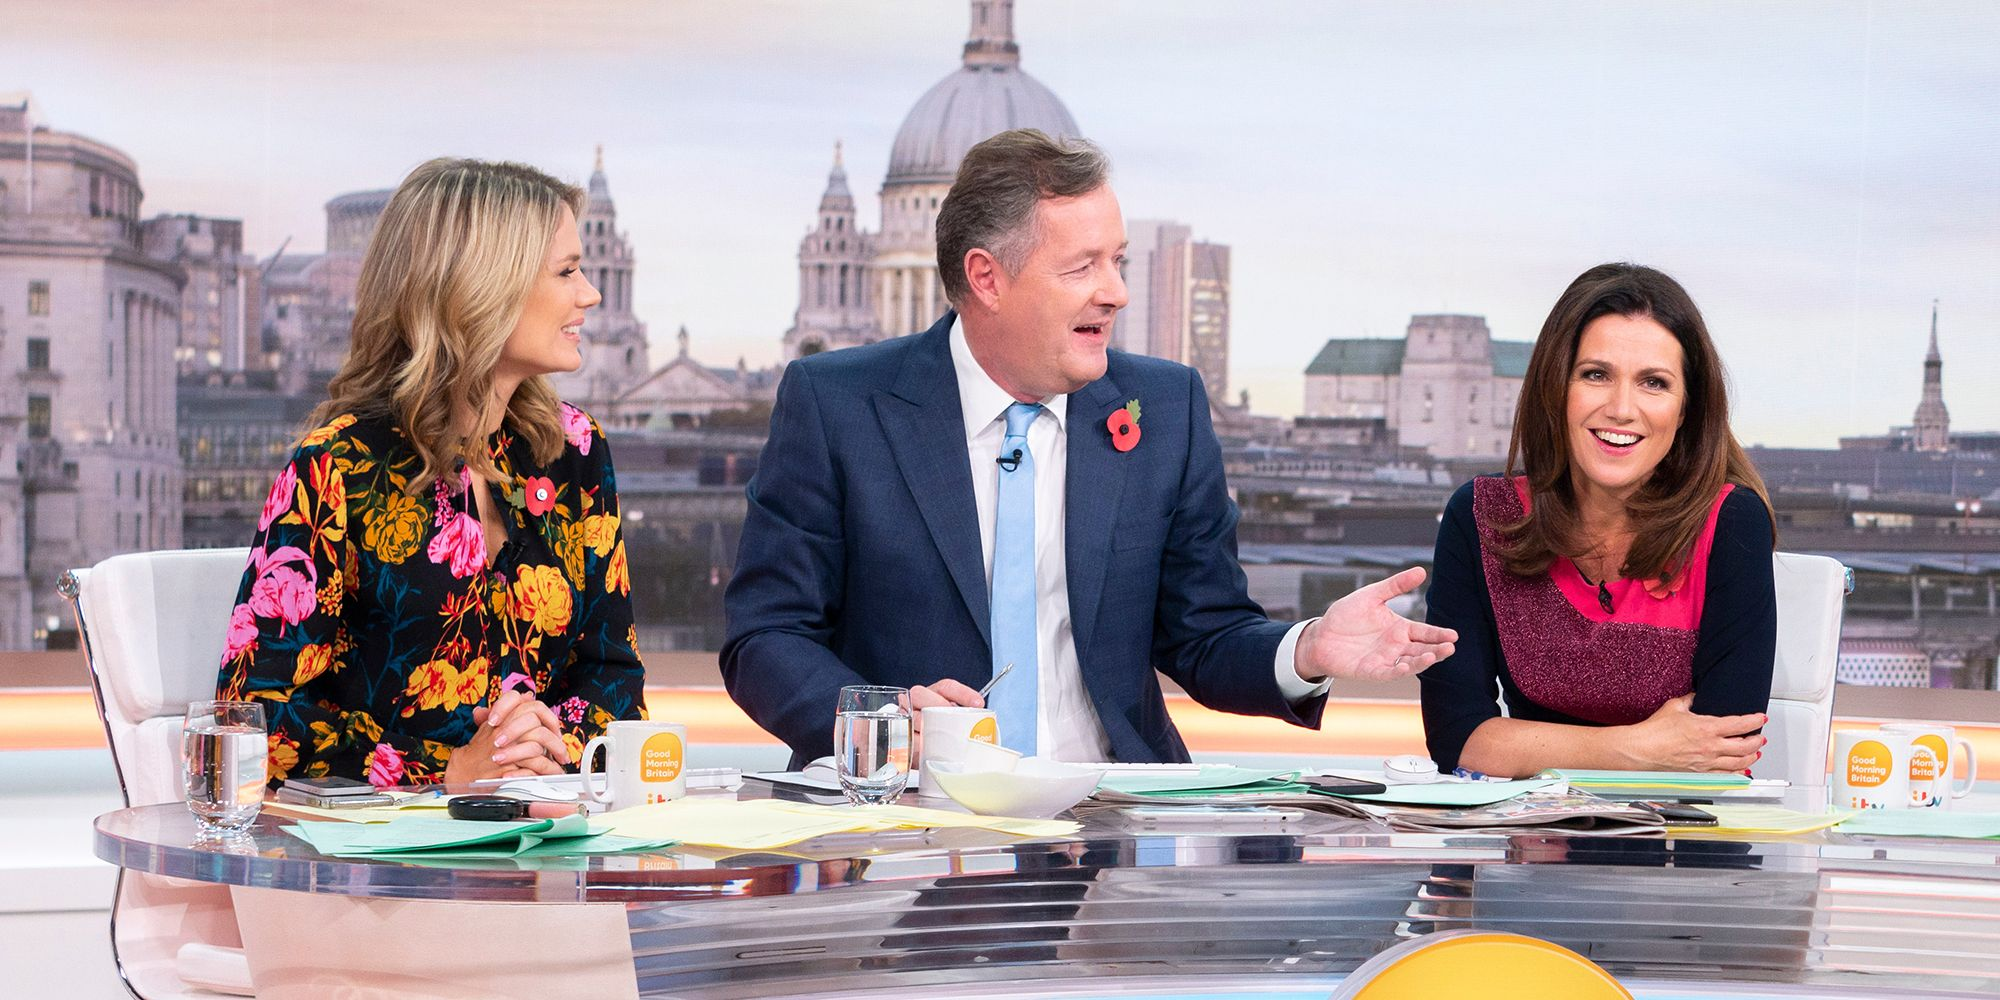 'Good Morning Britain' TV show, London, UK - 05 Nov 2018